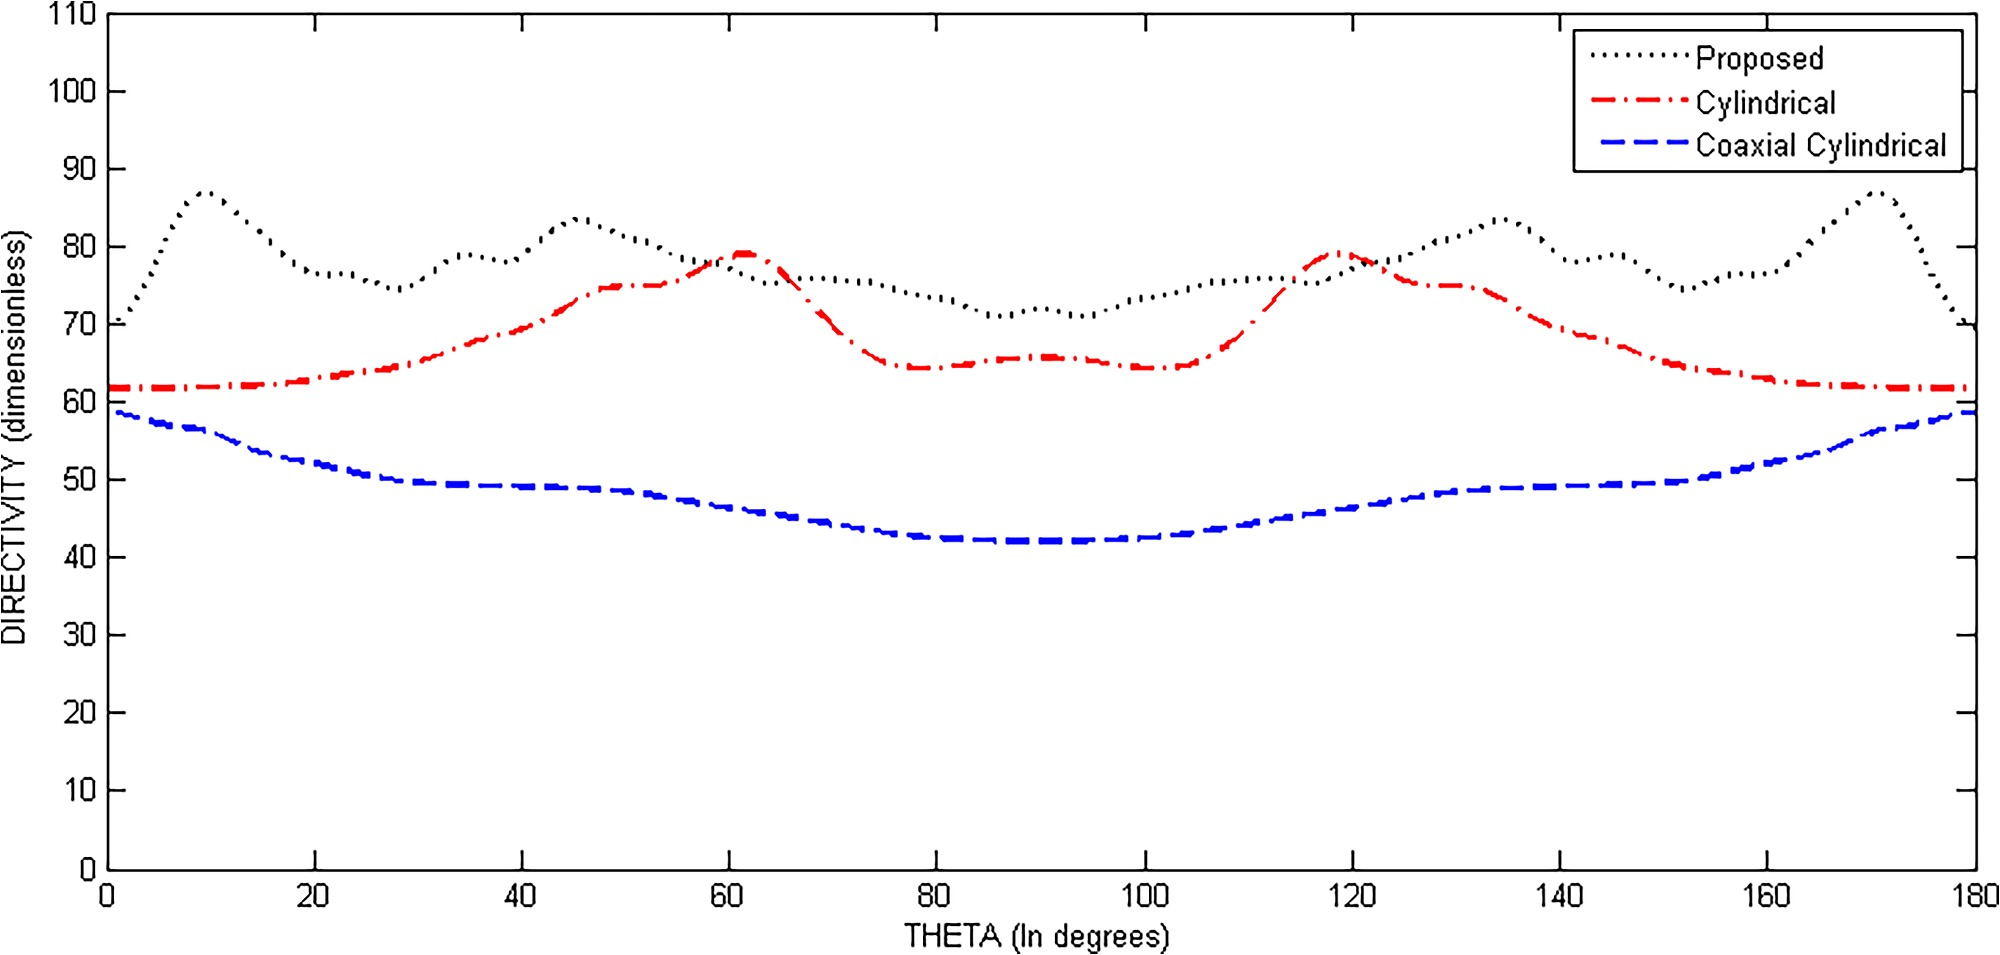 Directivity Comparison of Proposed, Cylindrical and Coaxial